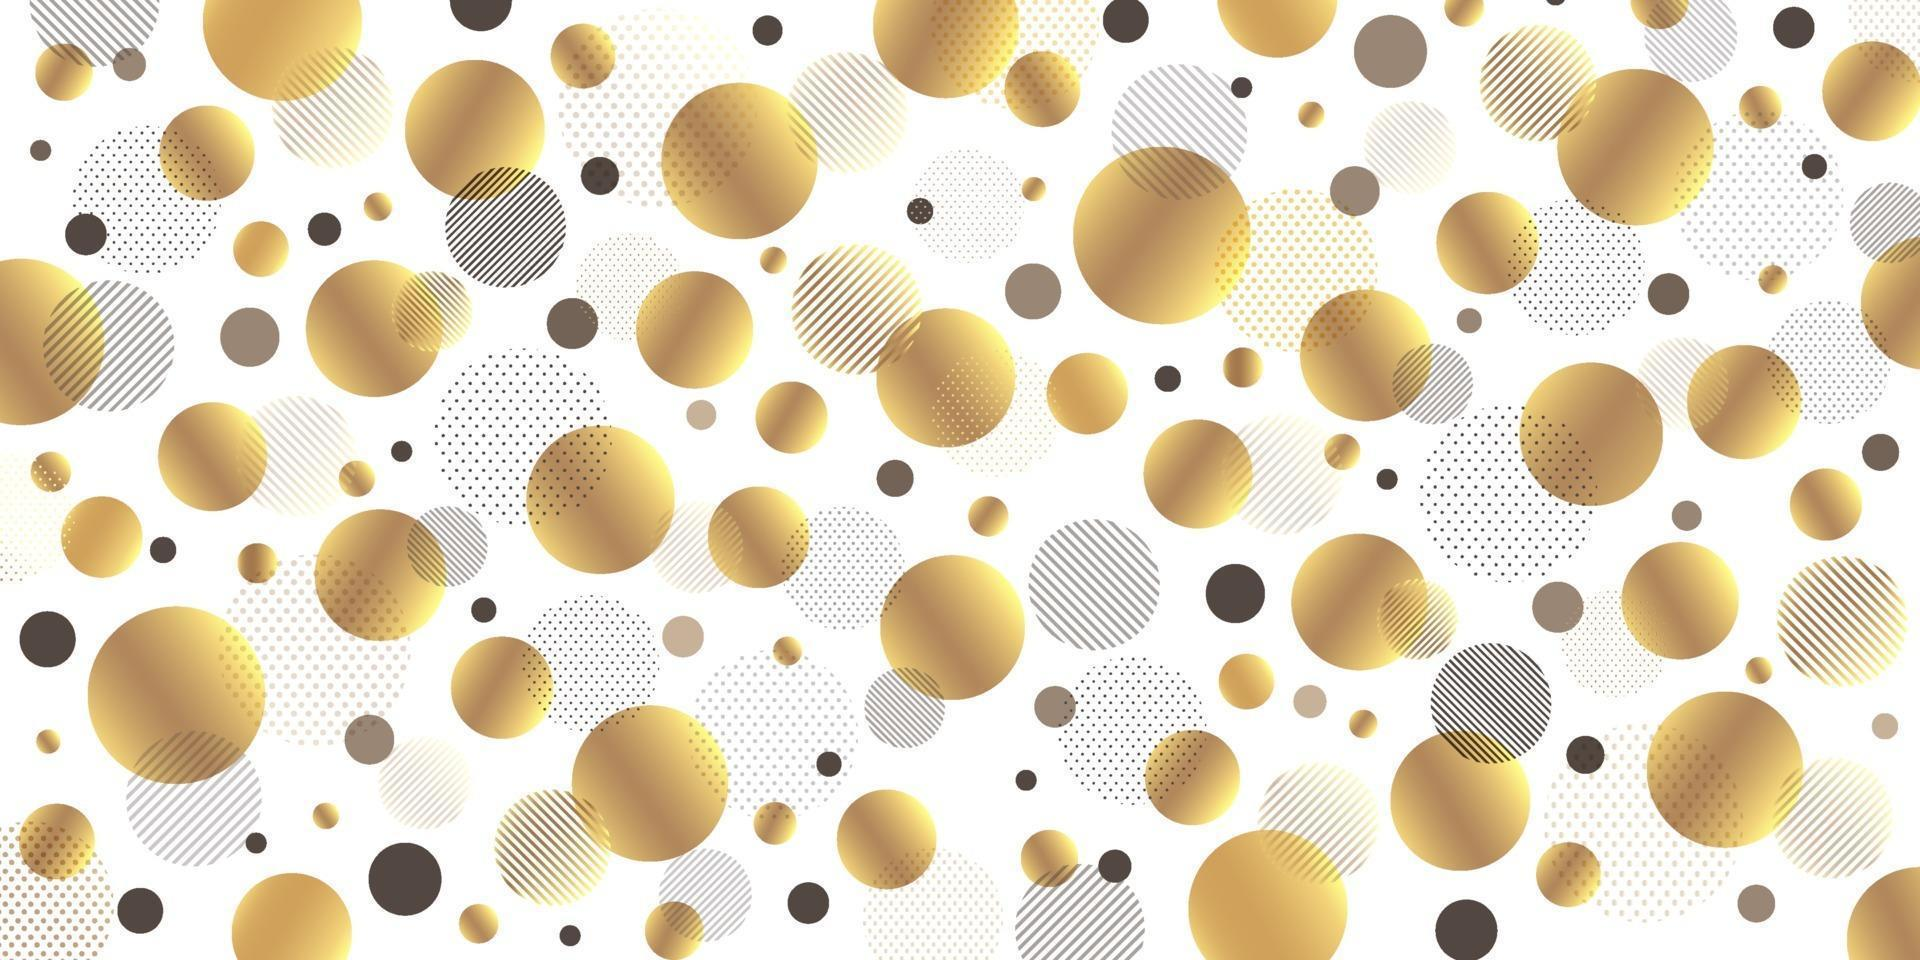 Abstract modern circle golden, black lines diagonally with black and gold dots pattern on white background. Luxury and elegant pattern design. Vector illustration